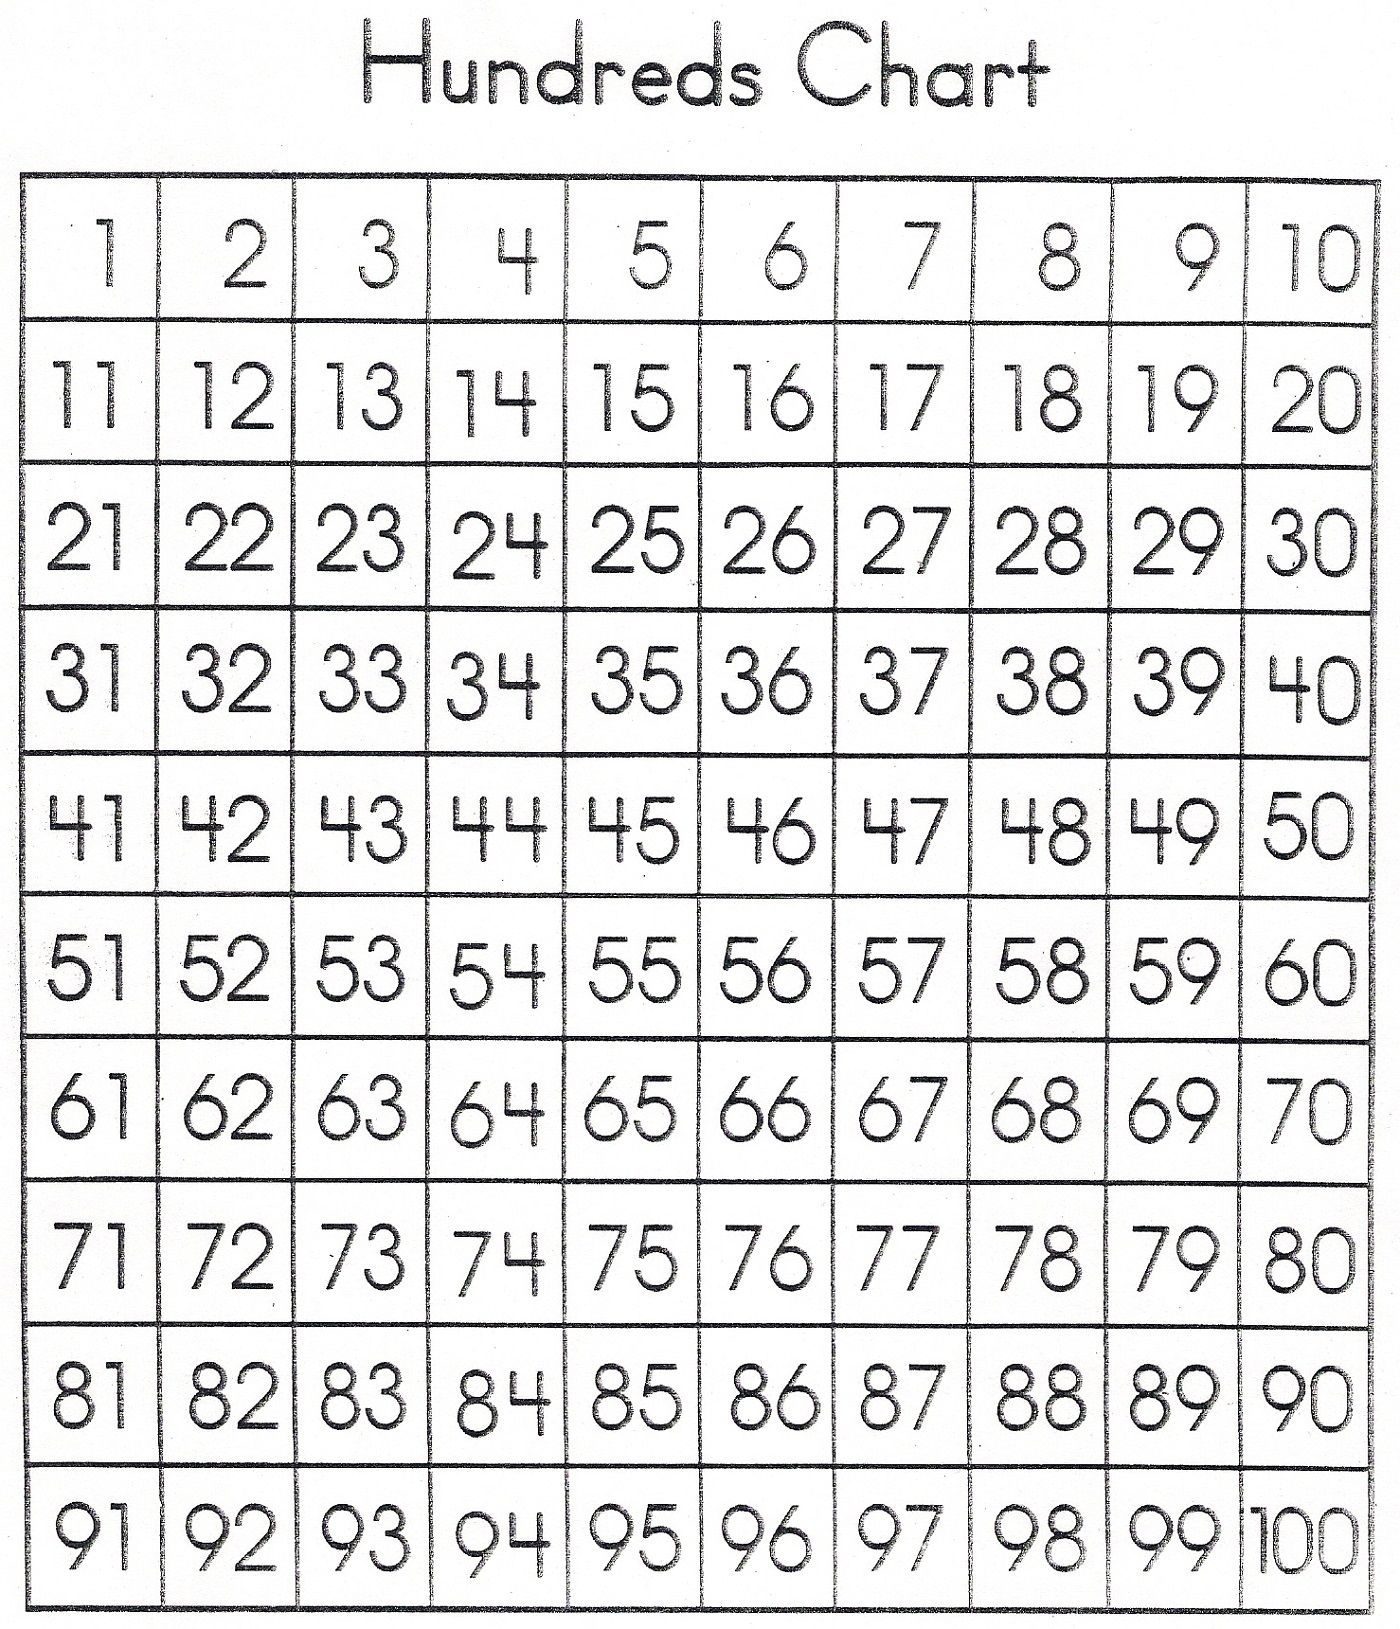 1-100 Number Chart Printable   Kiddo Shelter   Alphabet and ...